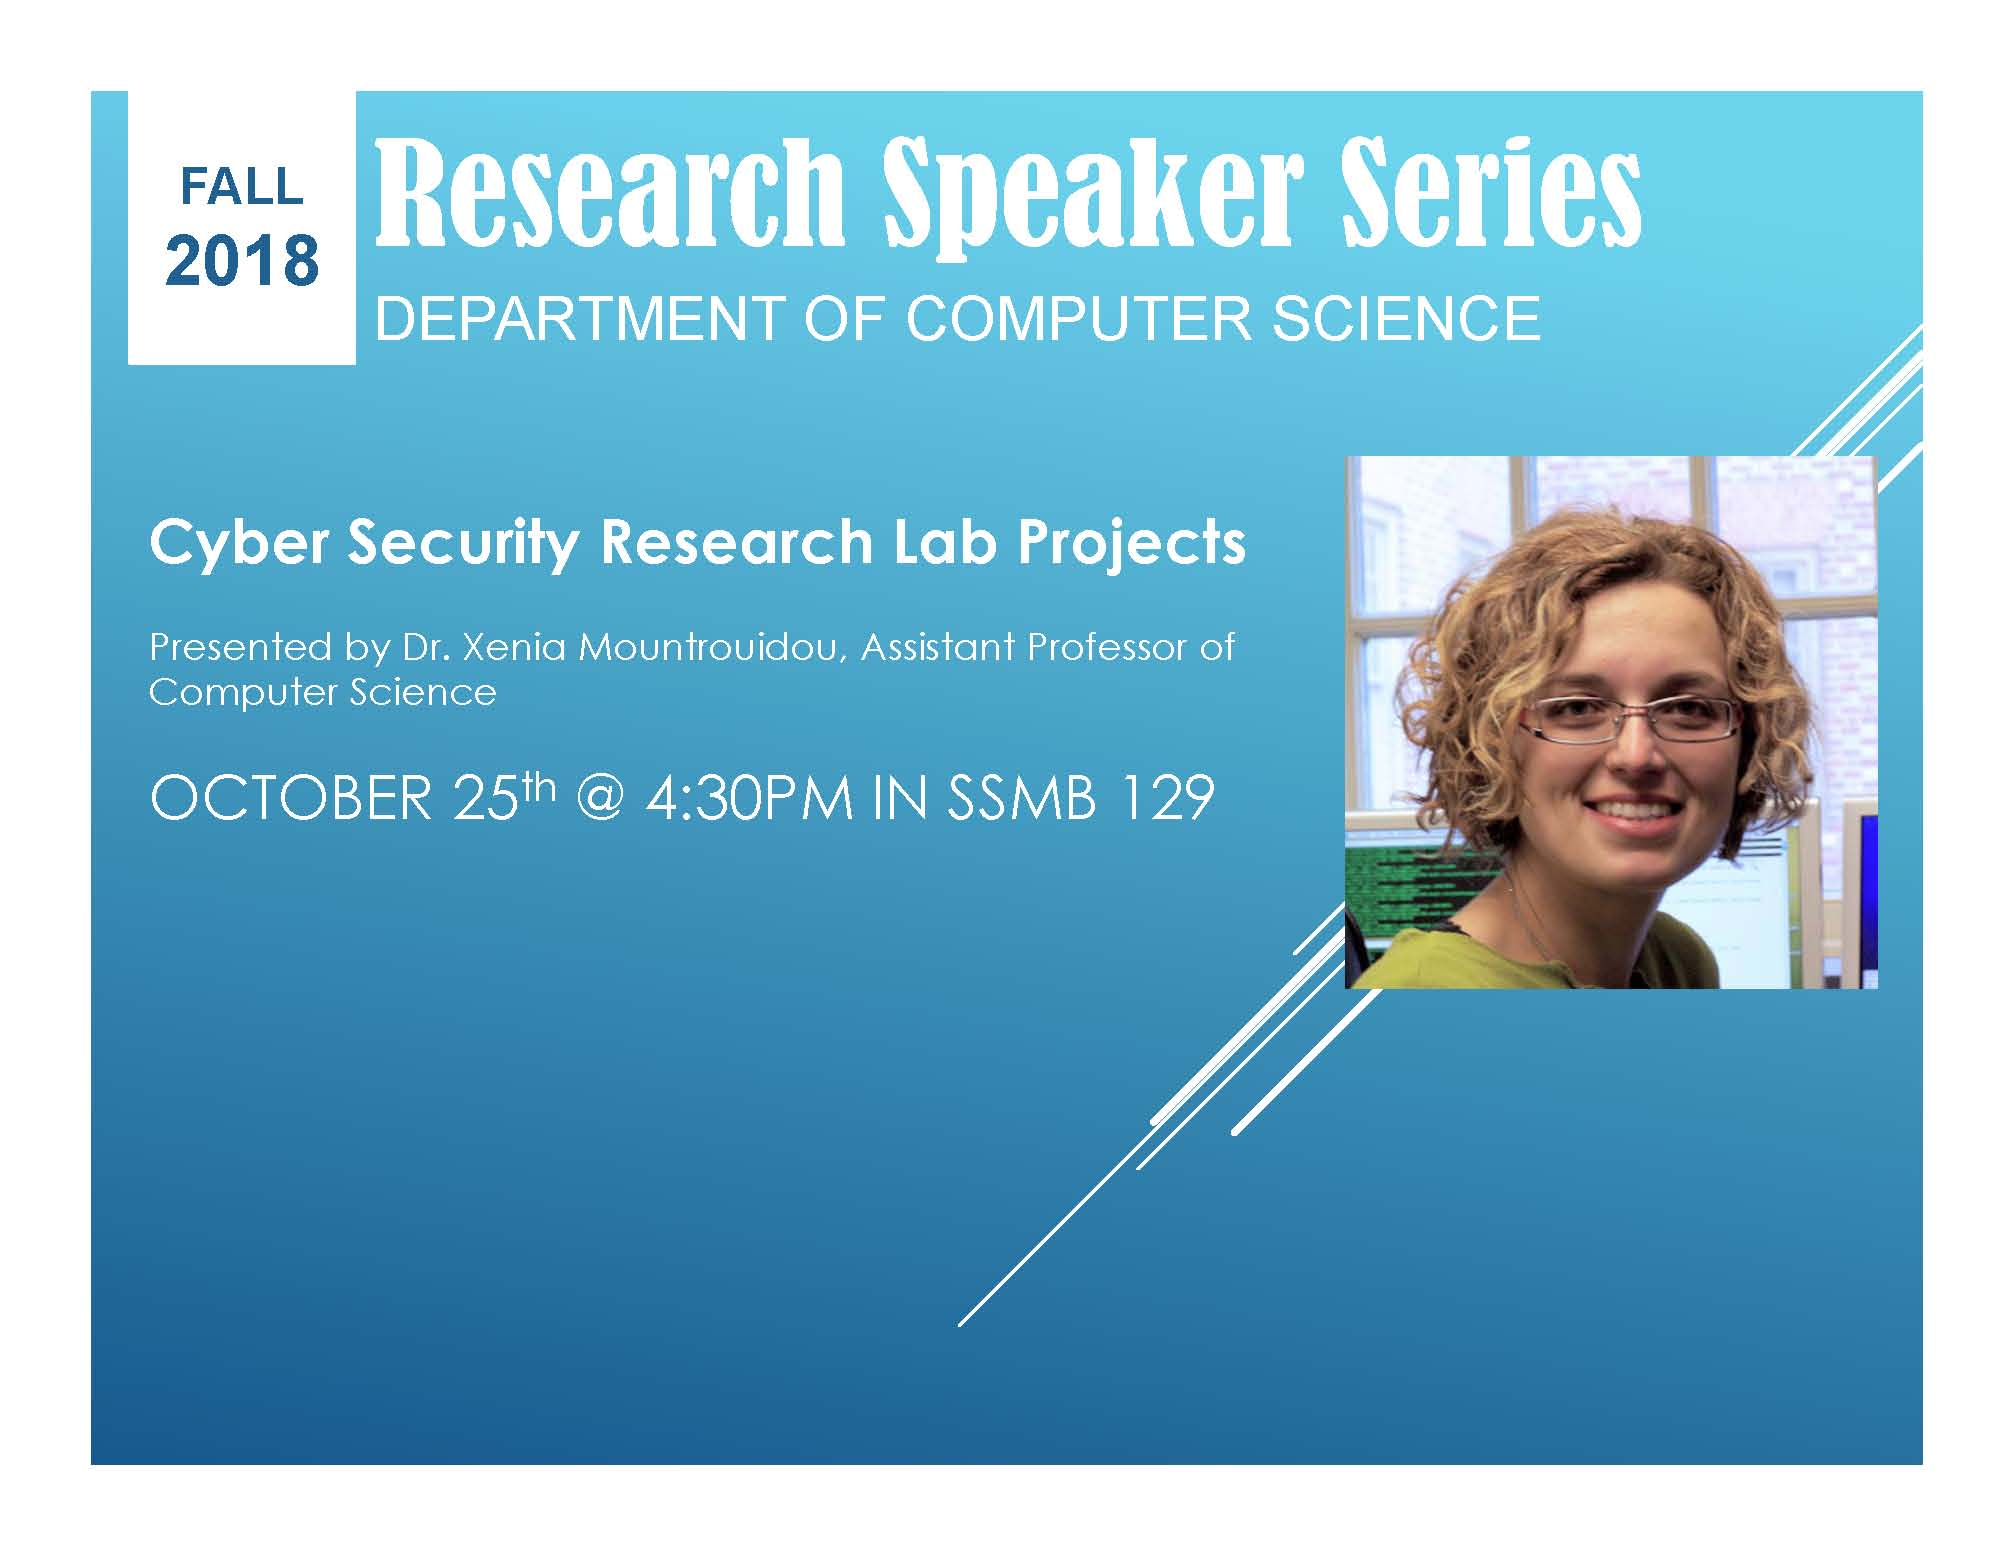 College of Charleston - Cyber Security Research Lab Projects